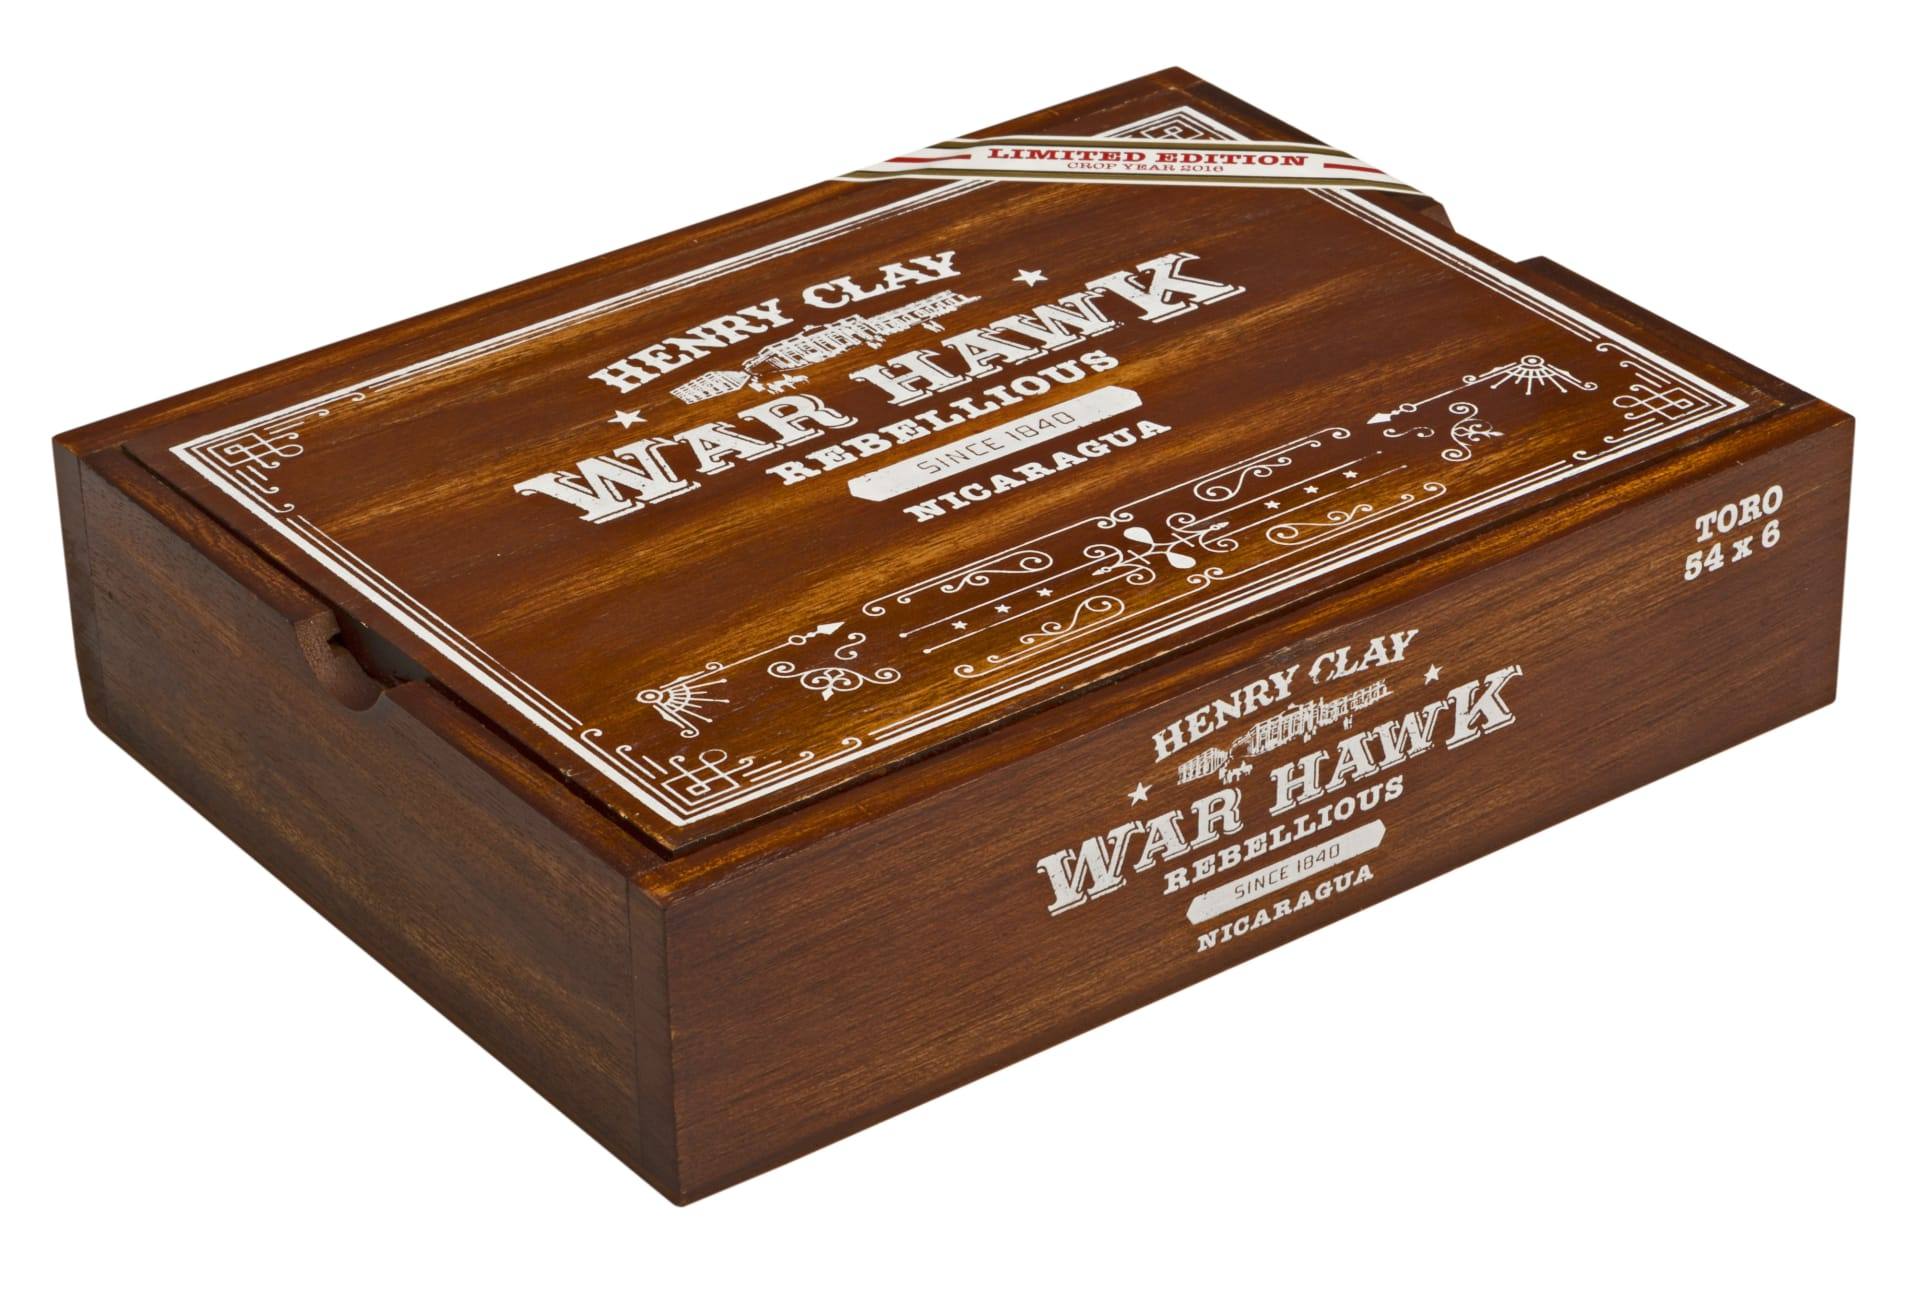 Henry Clay War Hawk Rebellious Coming in July Featured Image